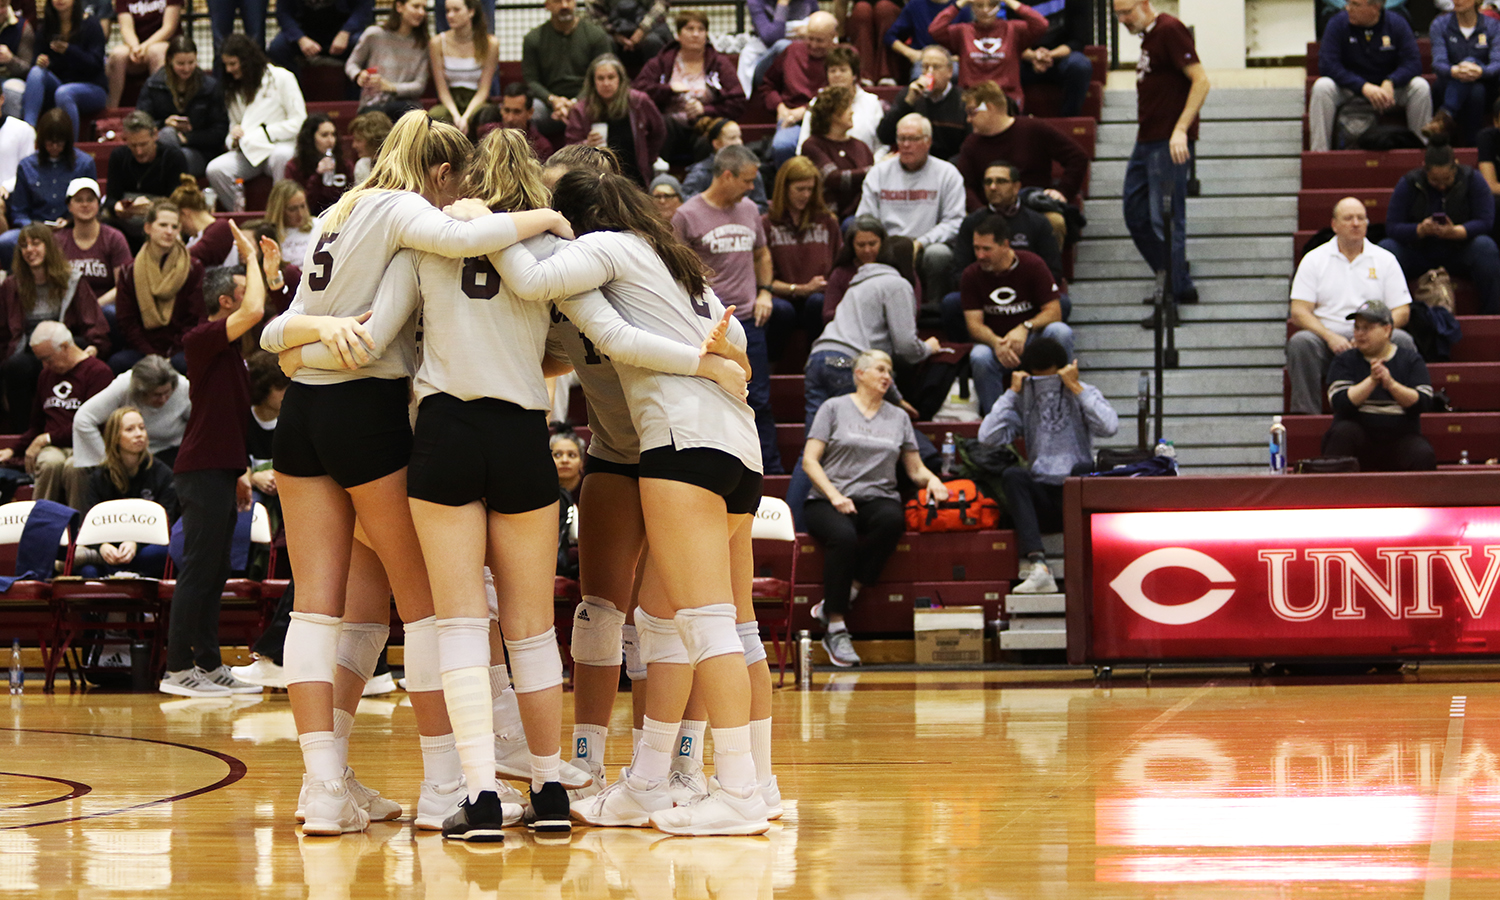 UChicago Volleyball Falls to Emory in UAA Title Match, 3-2